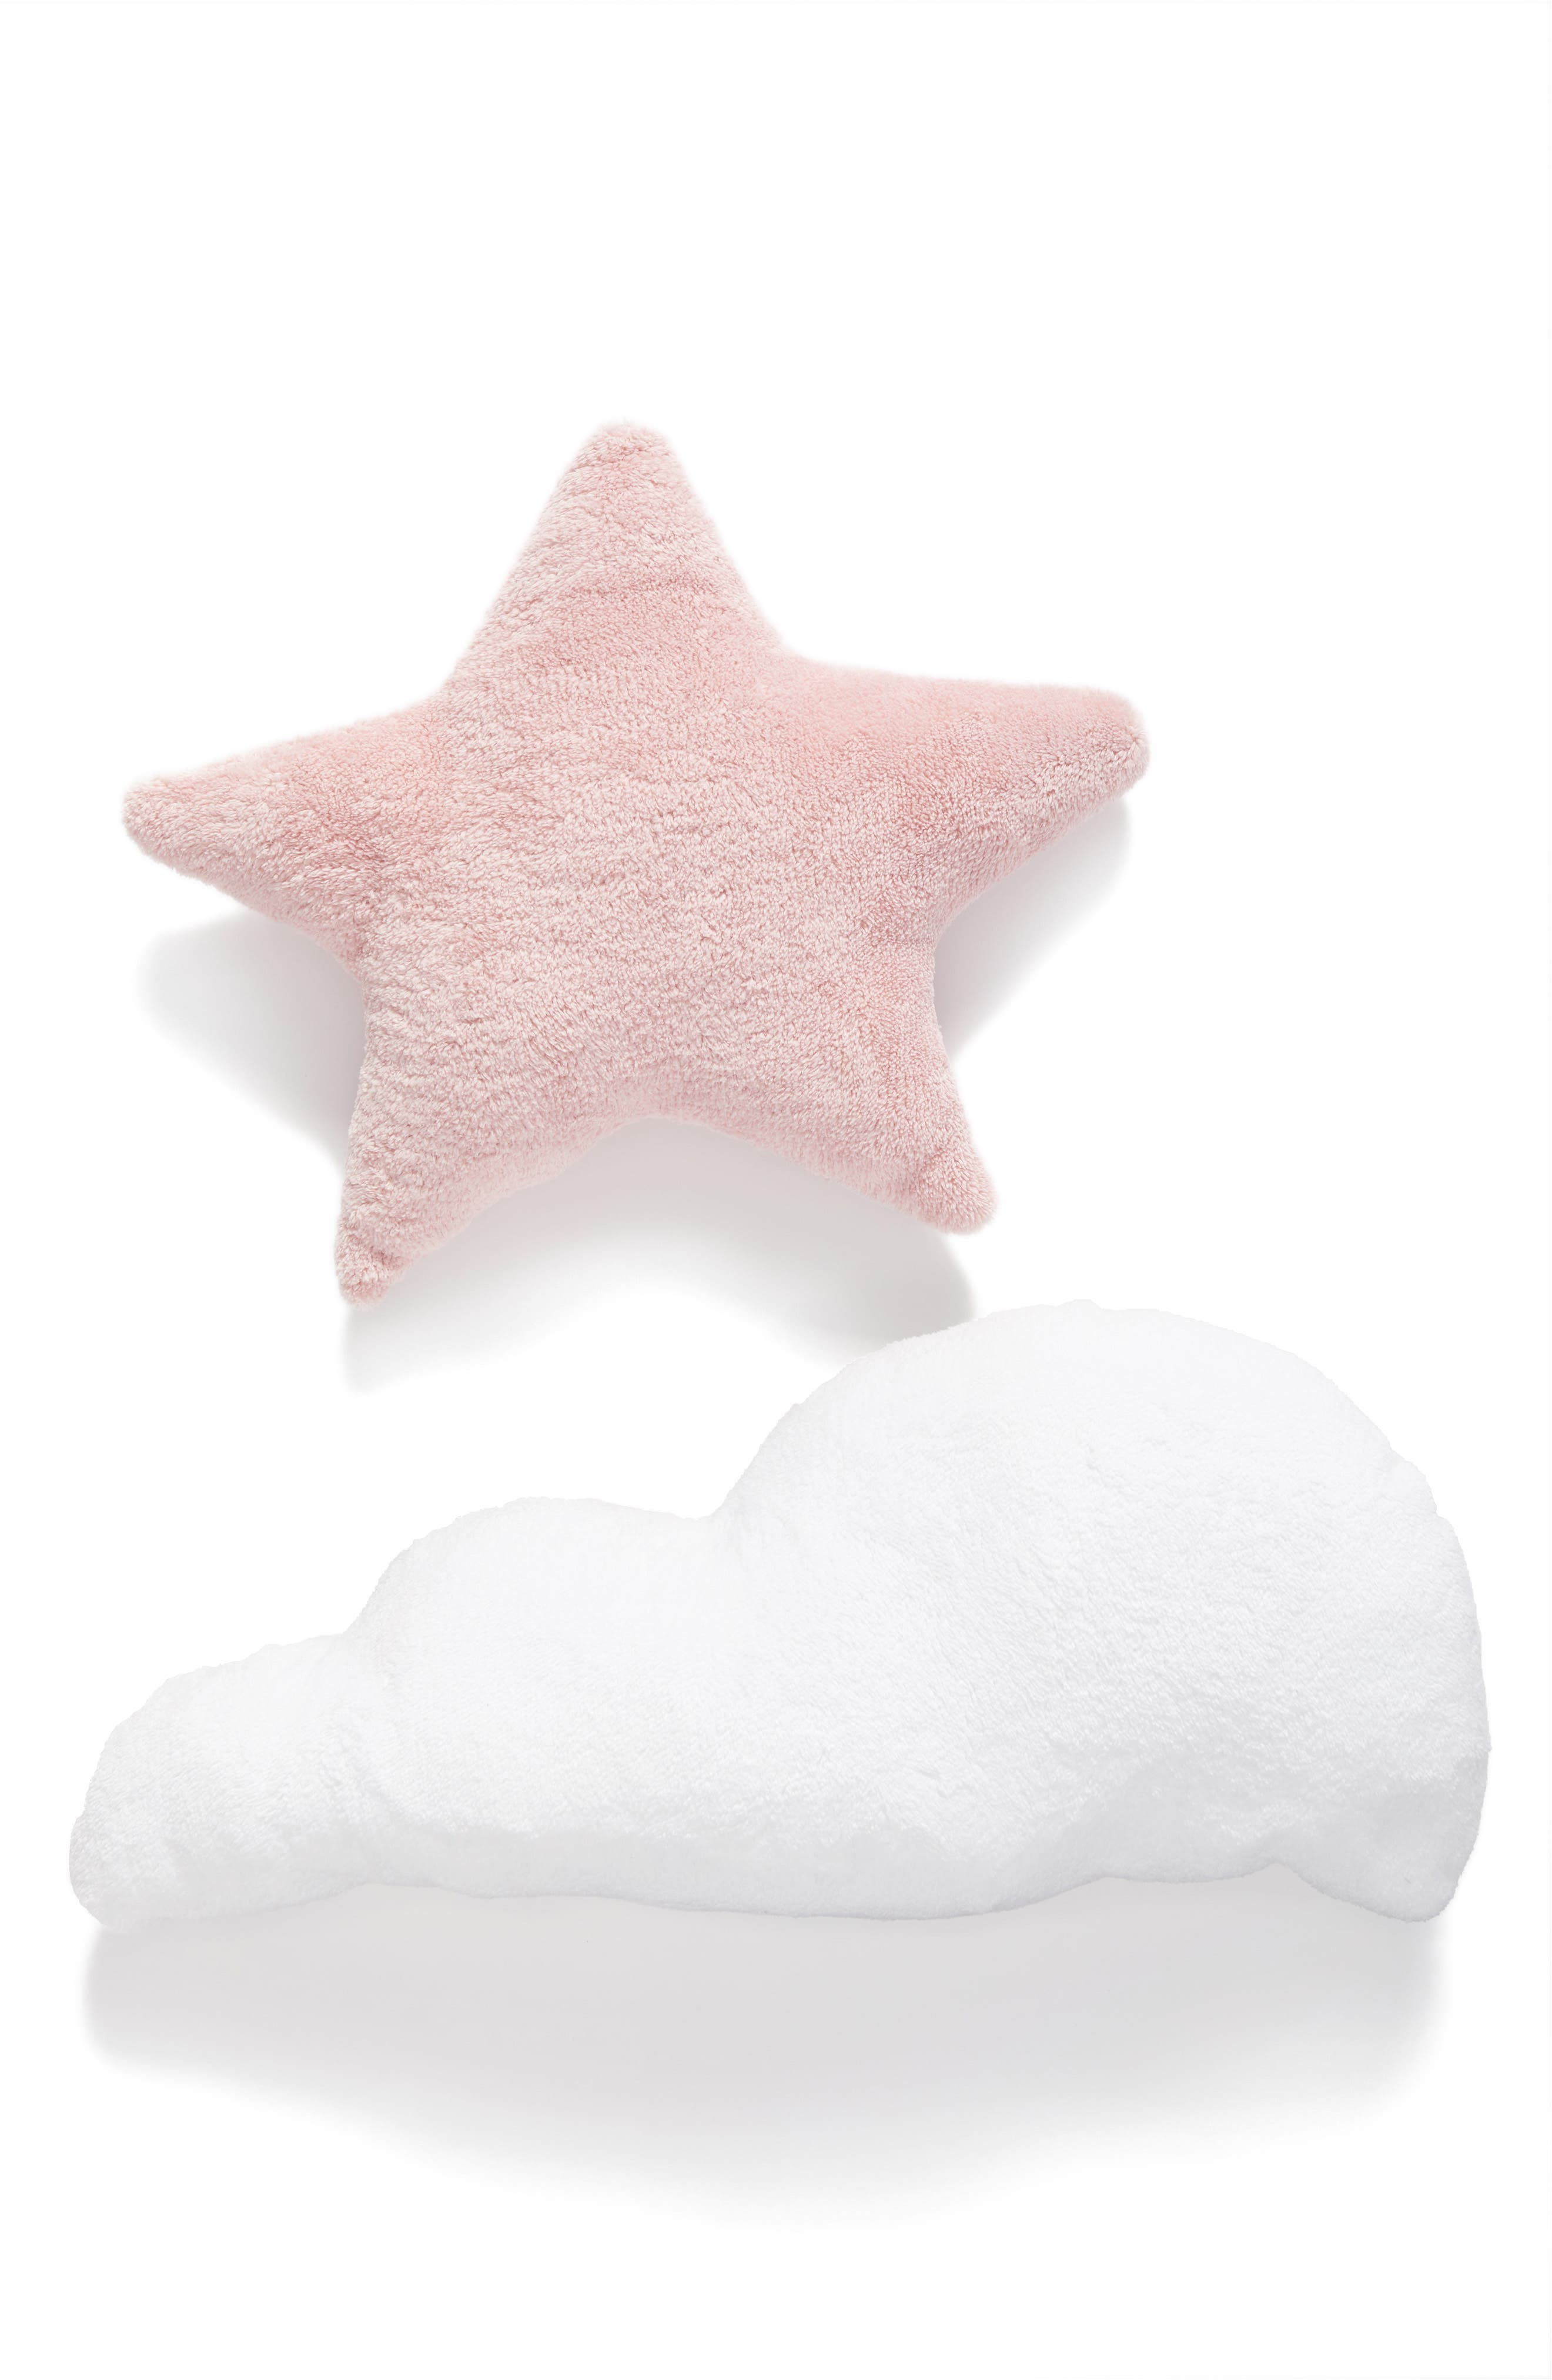 Oilo Cloud & Star Pillows